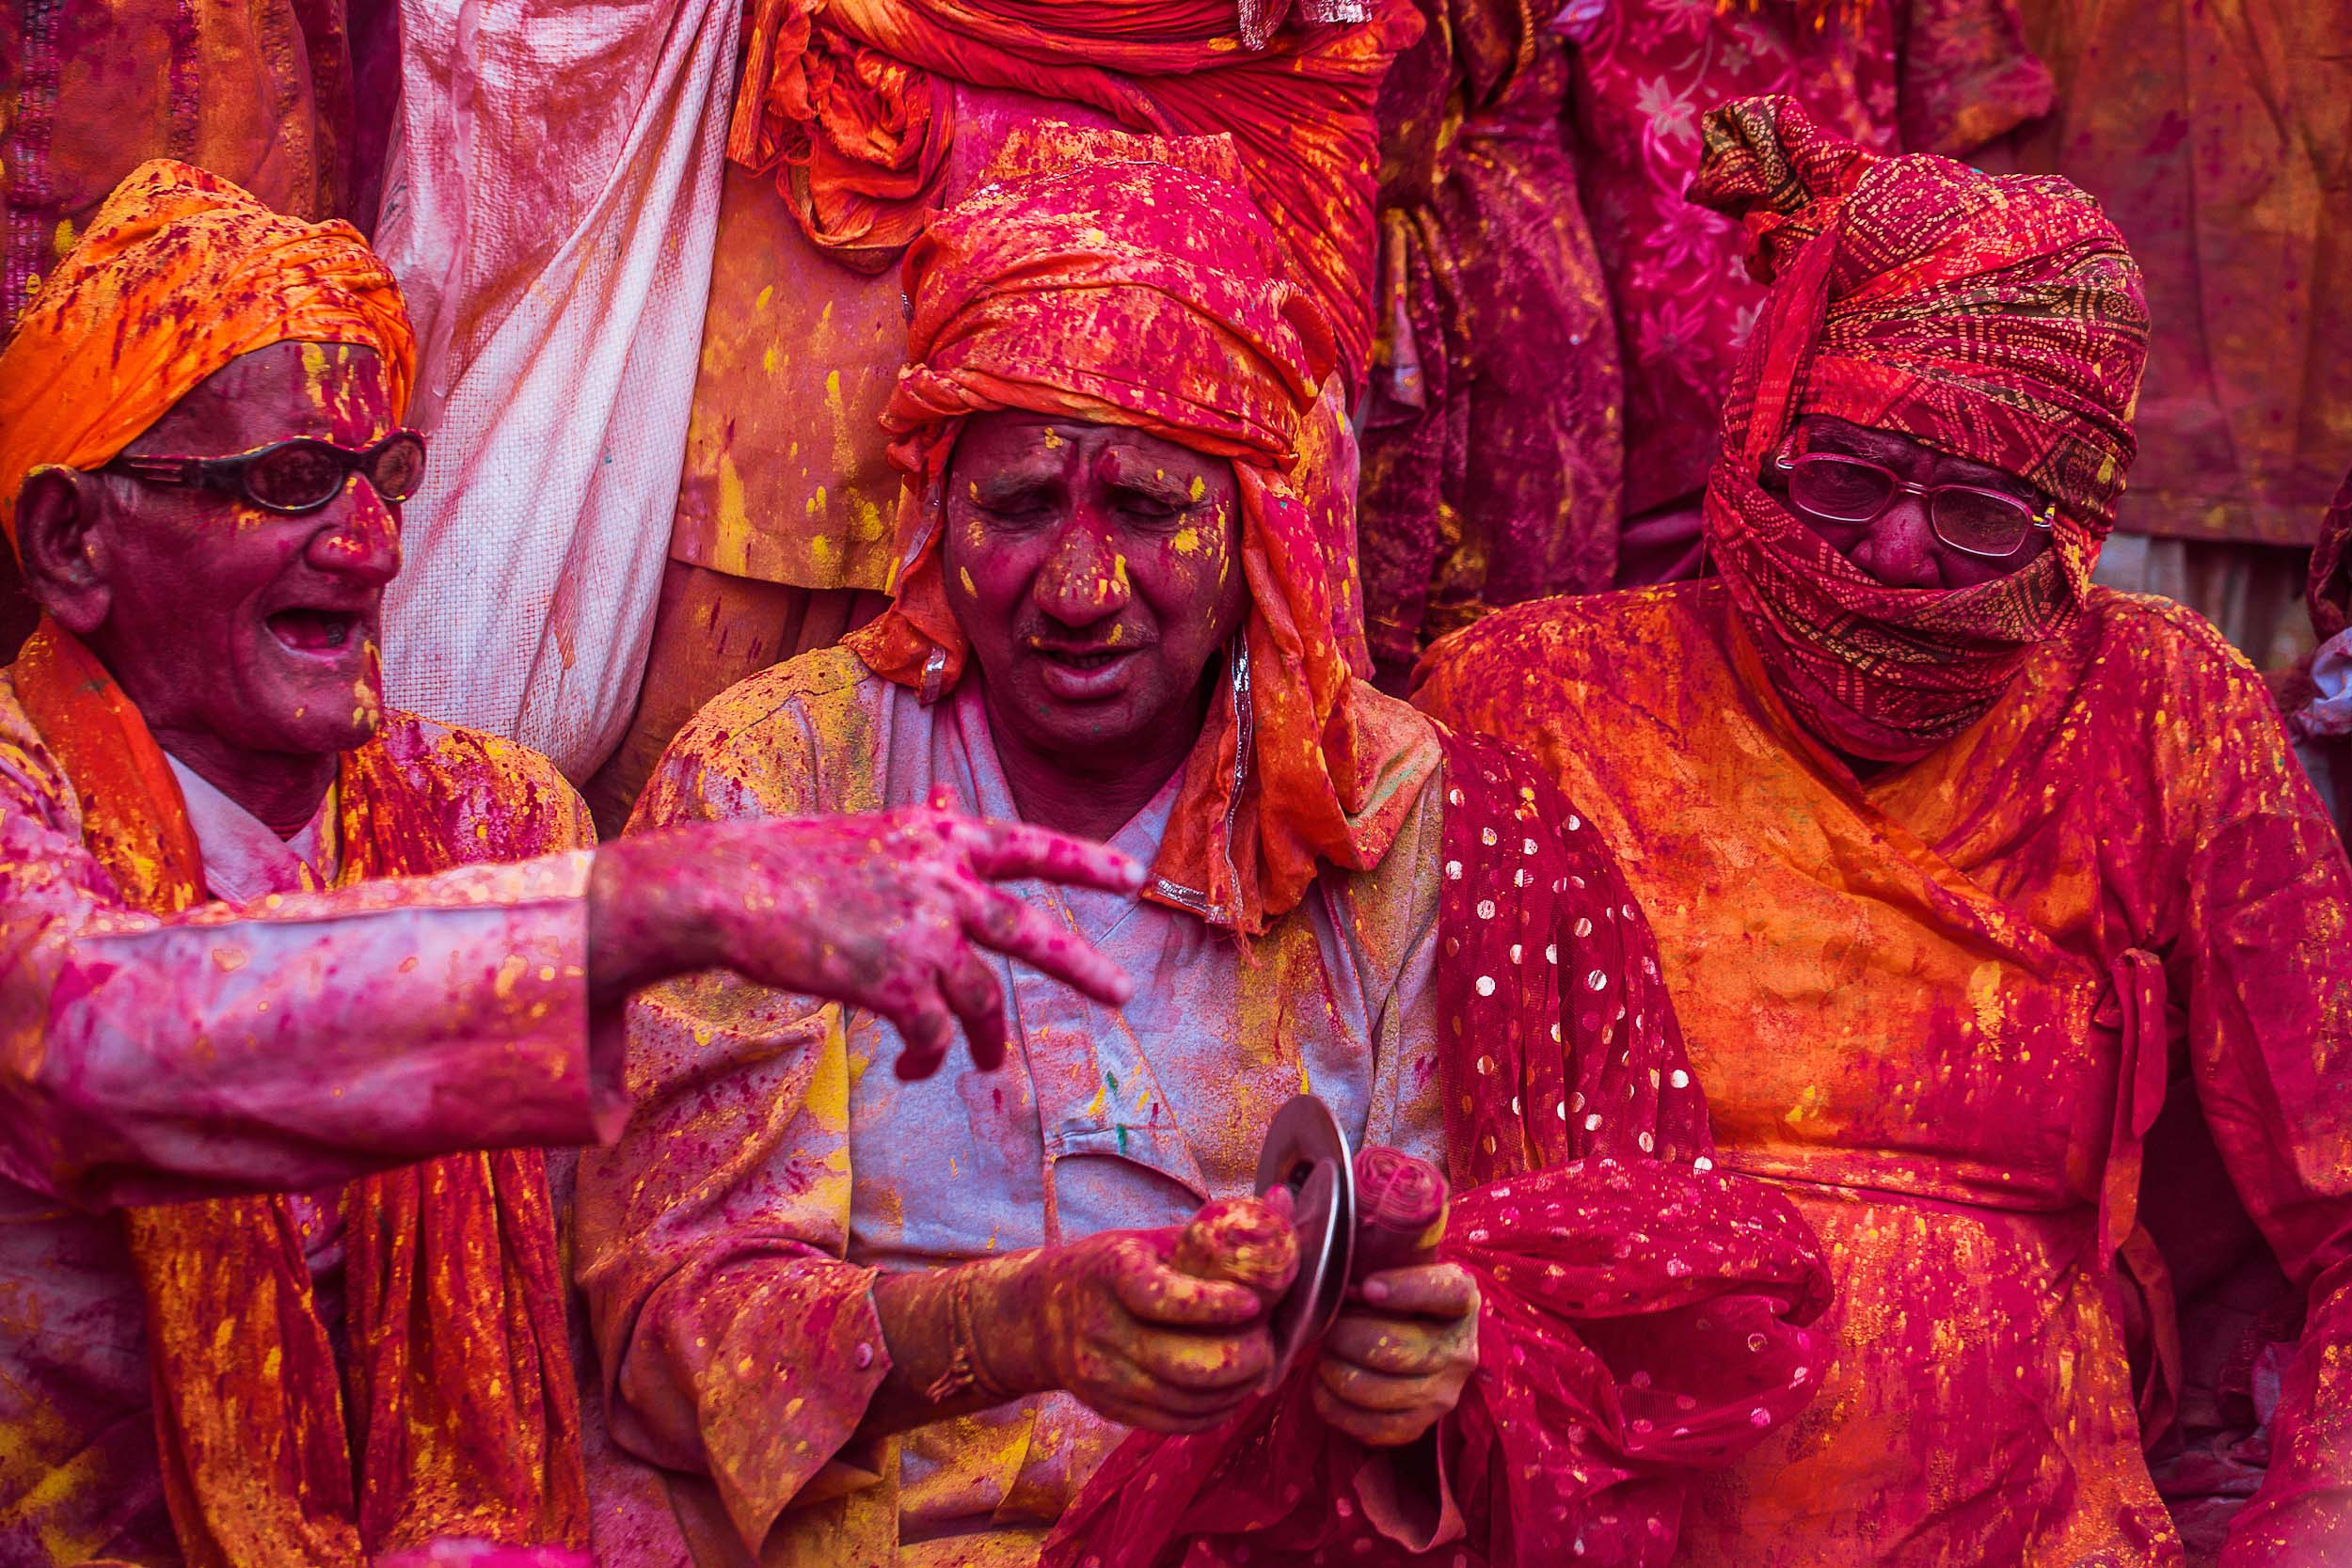 Sindhur_Photography_Travel_People_Holi-14.JPG